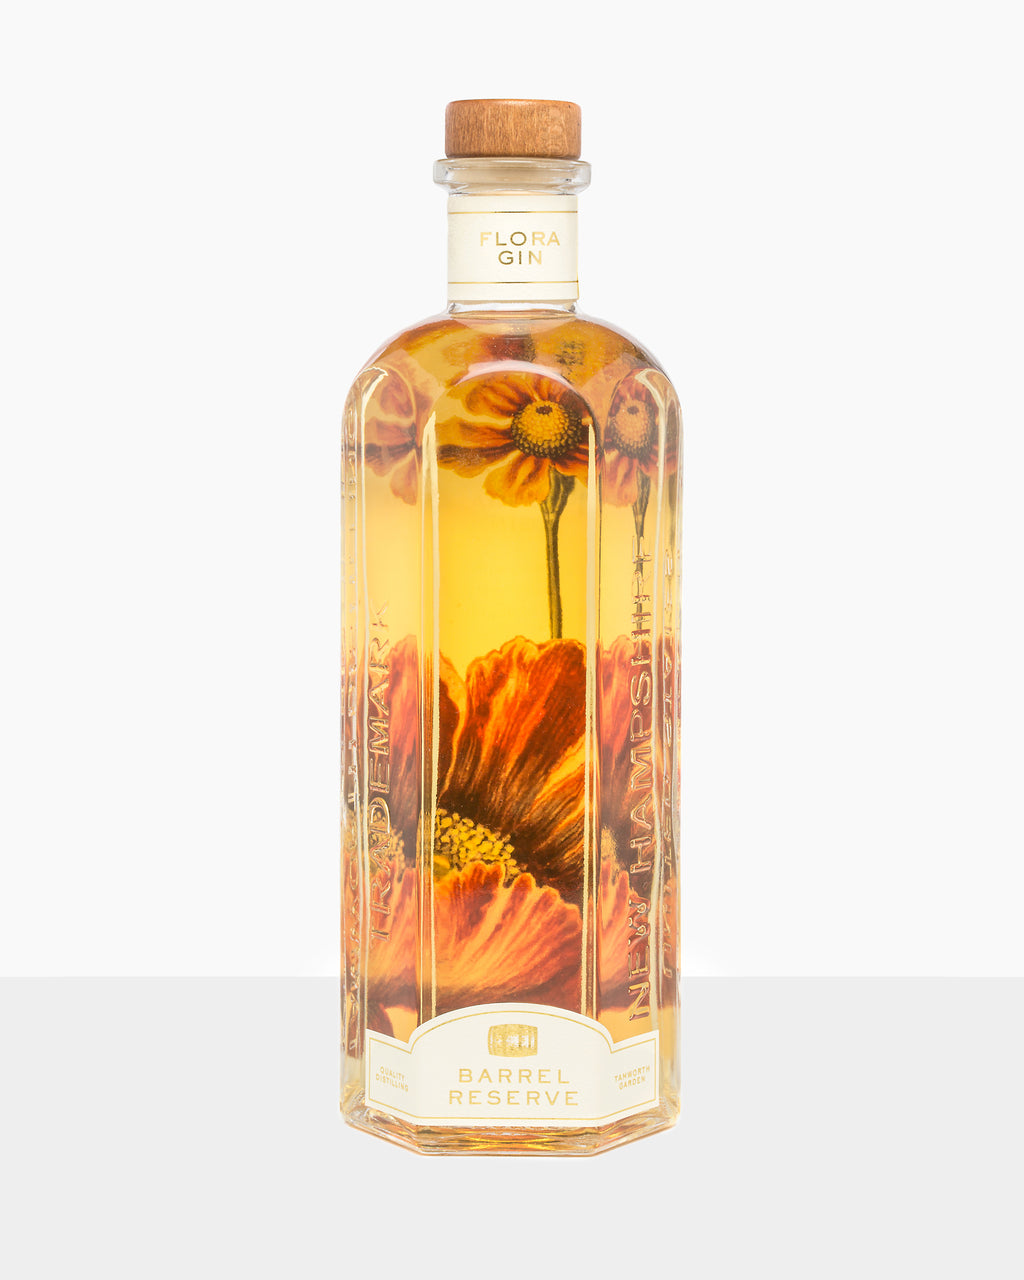 Tamworth Garden Barrel Aged Flora Gin